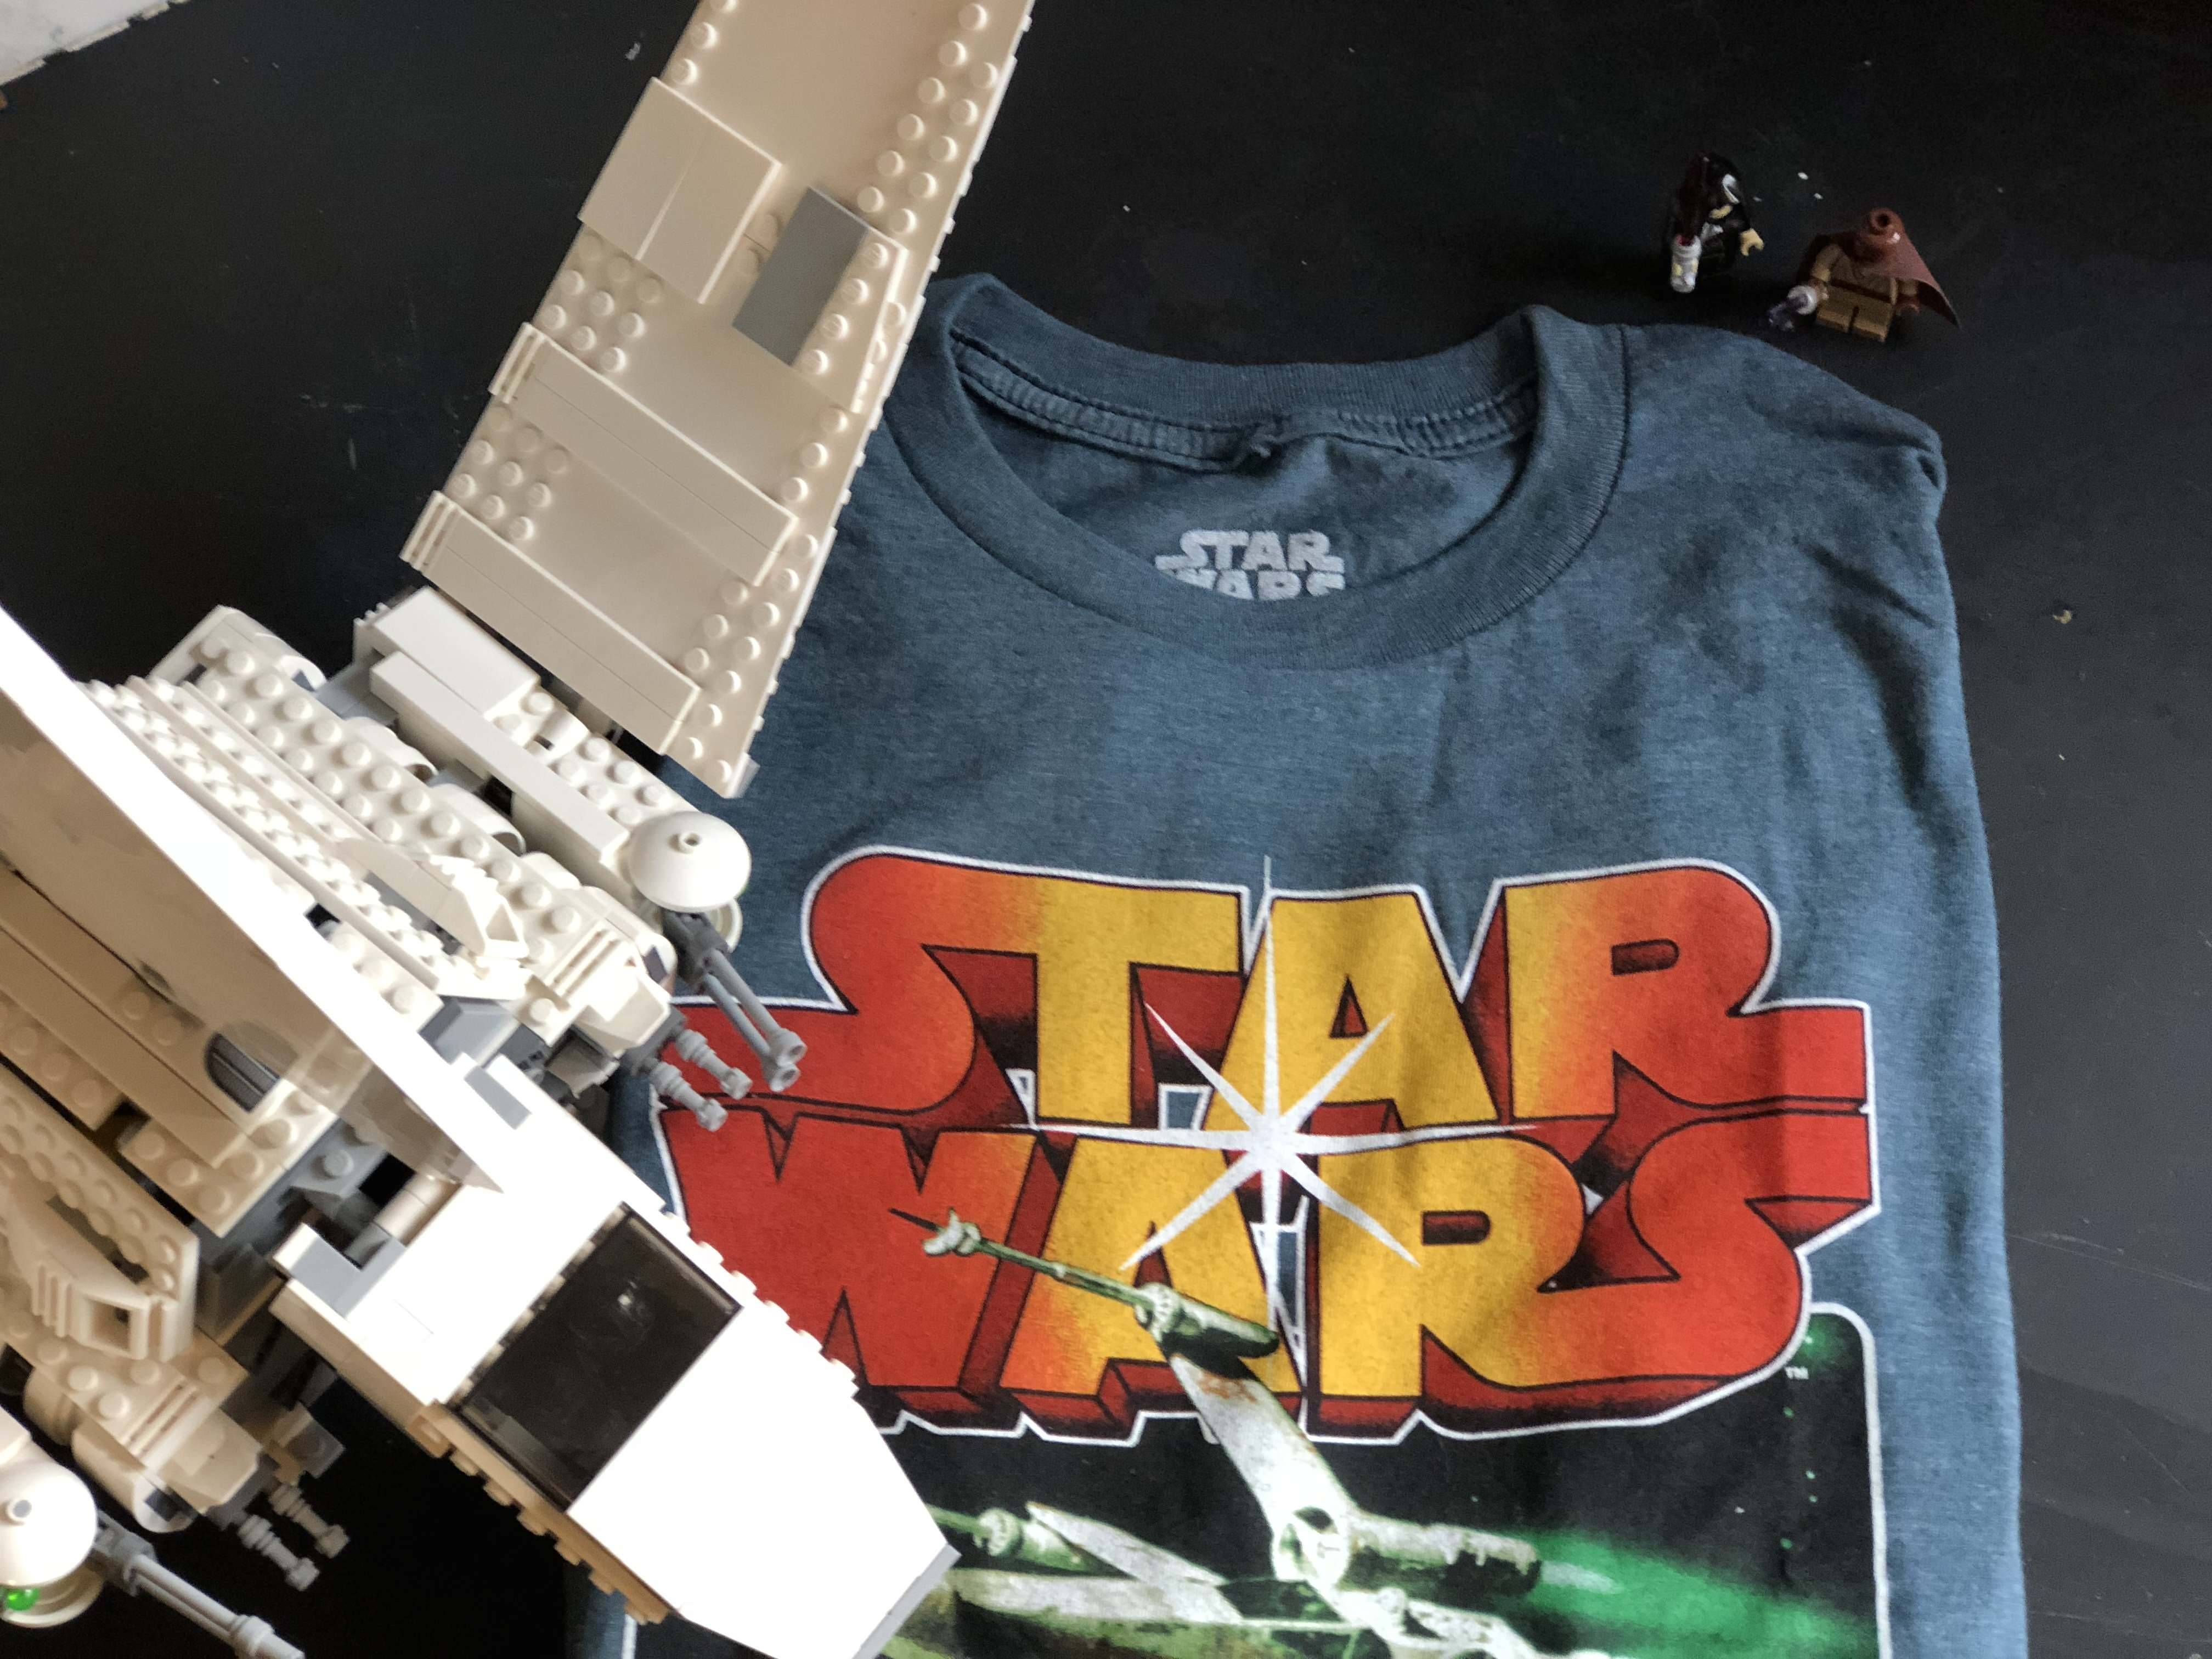 Surprising holiday gifts at Cracker Barrel: Star Wars t-shirts | sponsor